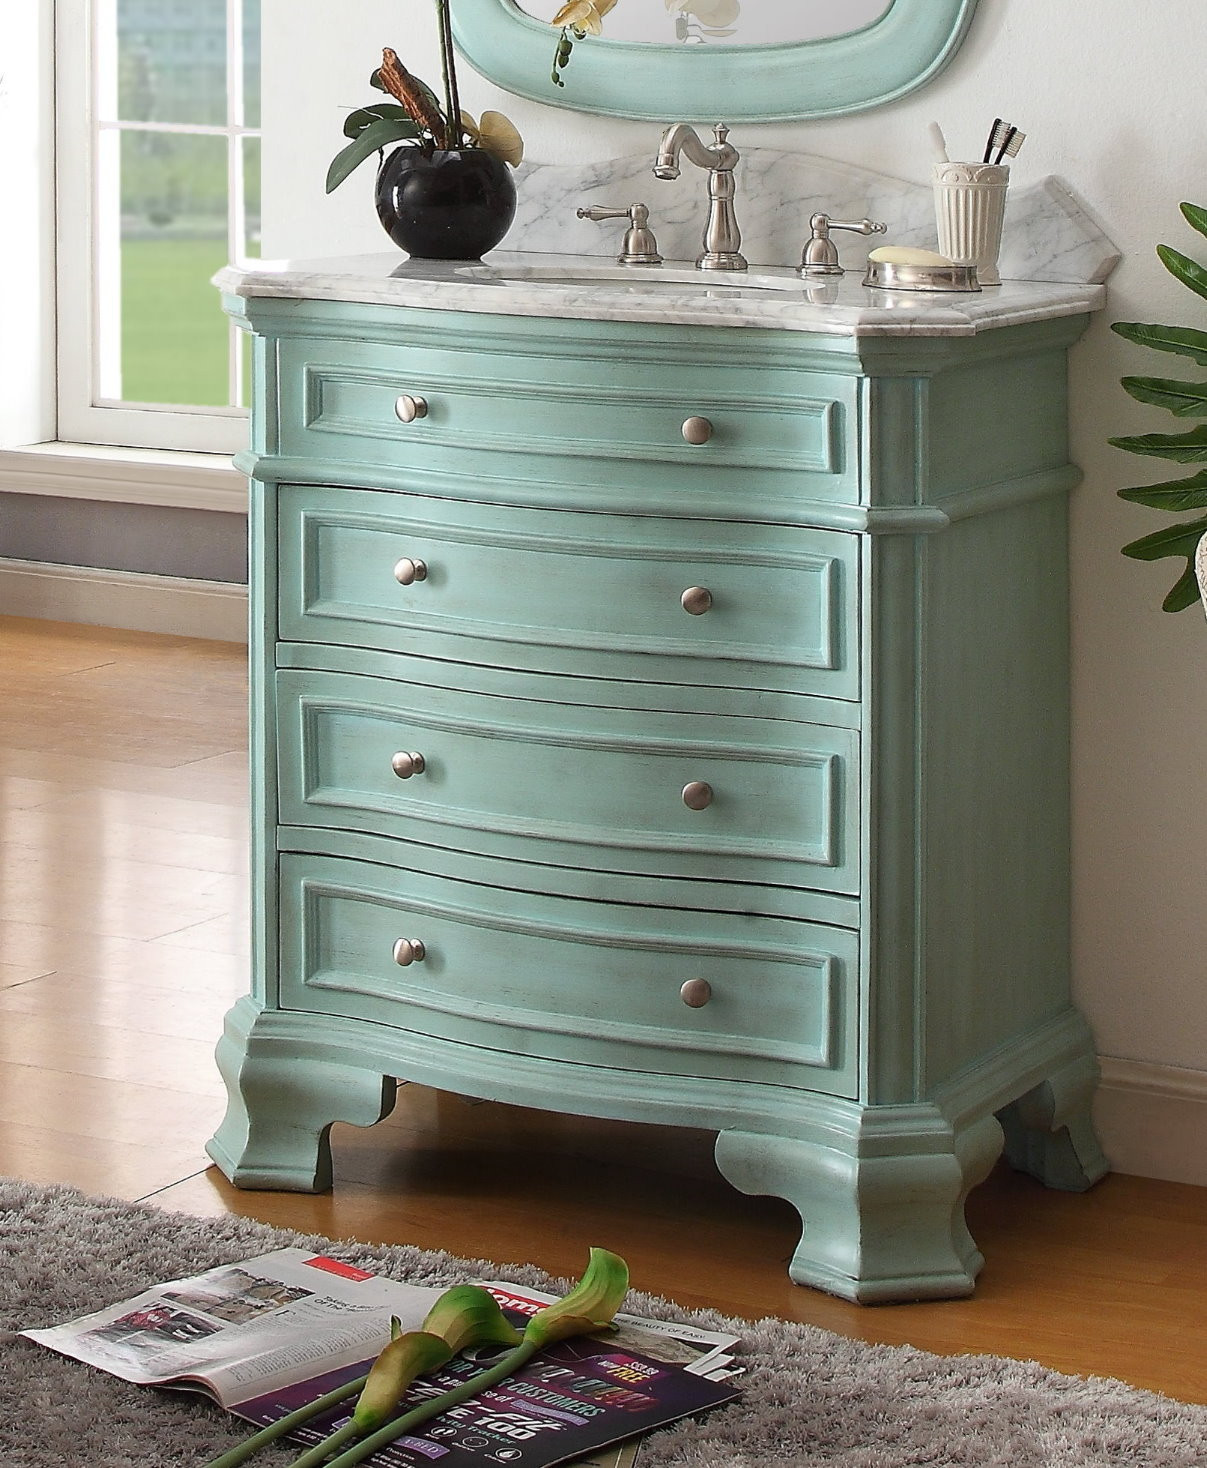 Dresser Bathroom Vanity  32 inch Bathroom Vanity 3 Drawers Coastal Cottage Beach